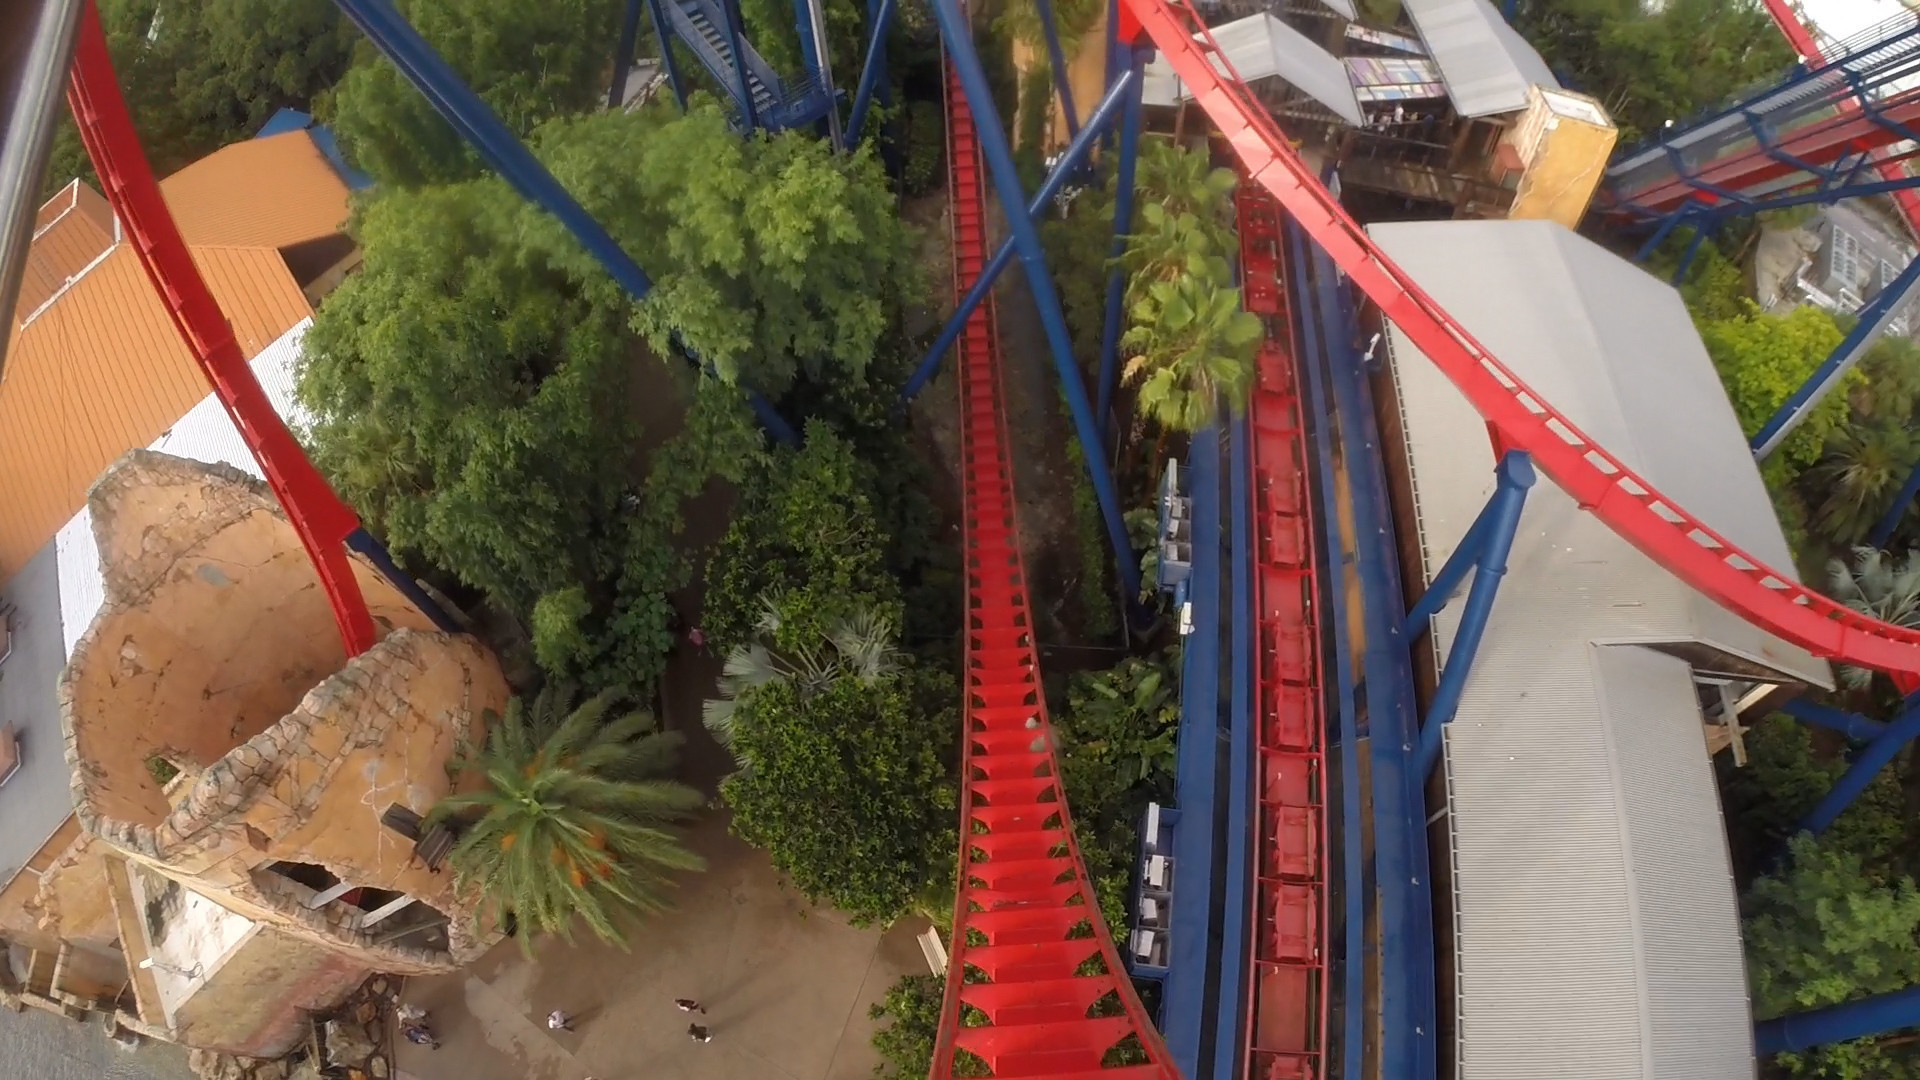 Busch gardens quietly reigns as florida 39 s roller coaster - Busch gardens rides height requirements ...